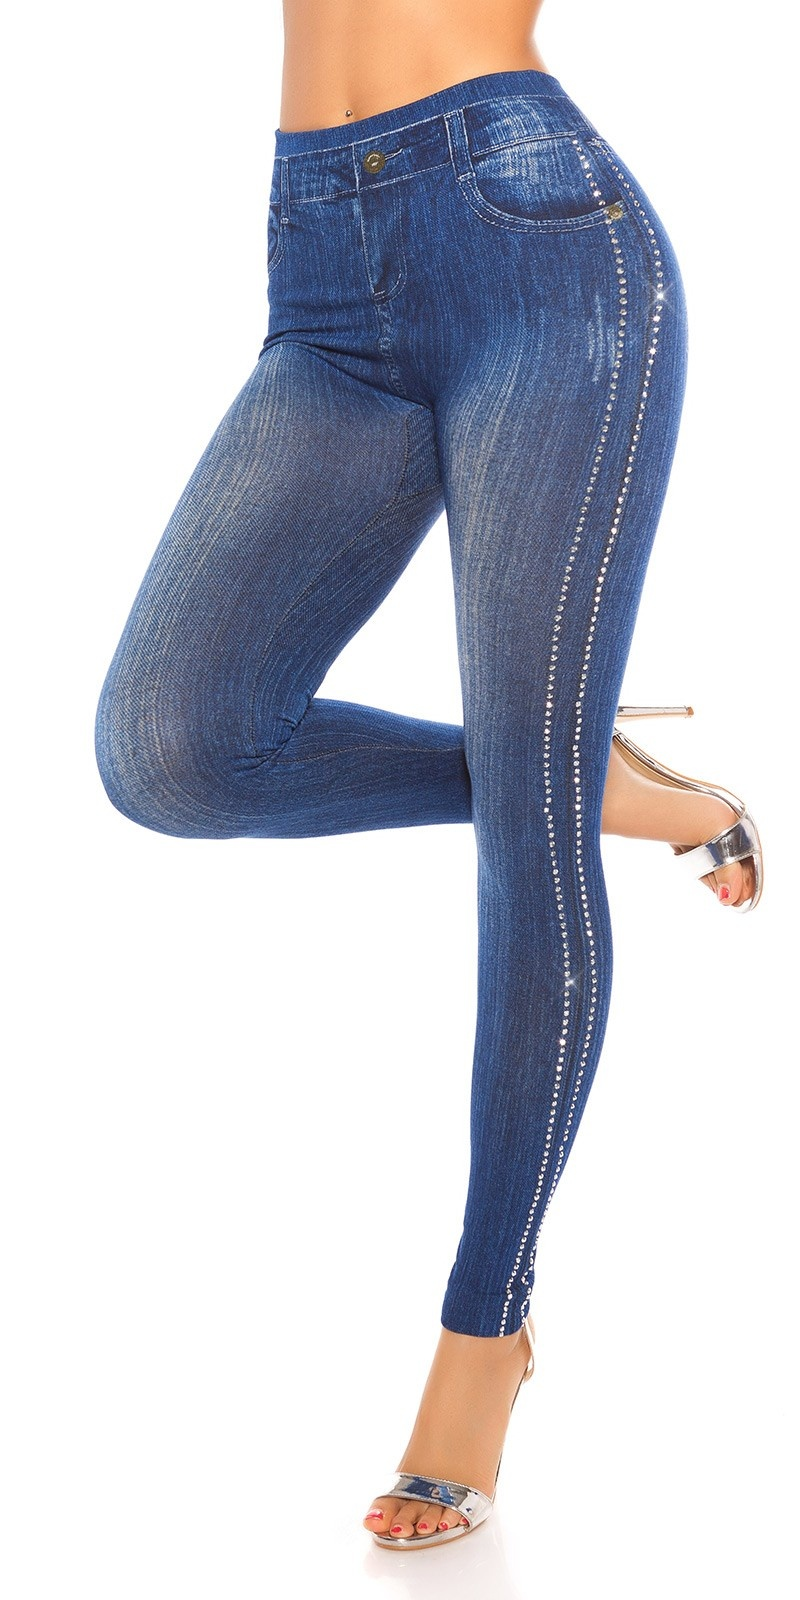 Sexy Jeanslook Leggings with rivets Blue